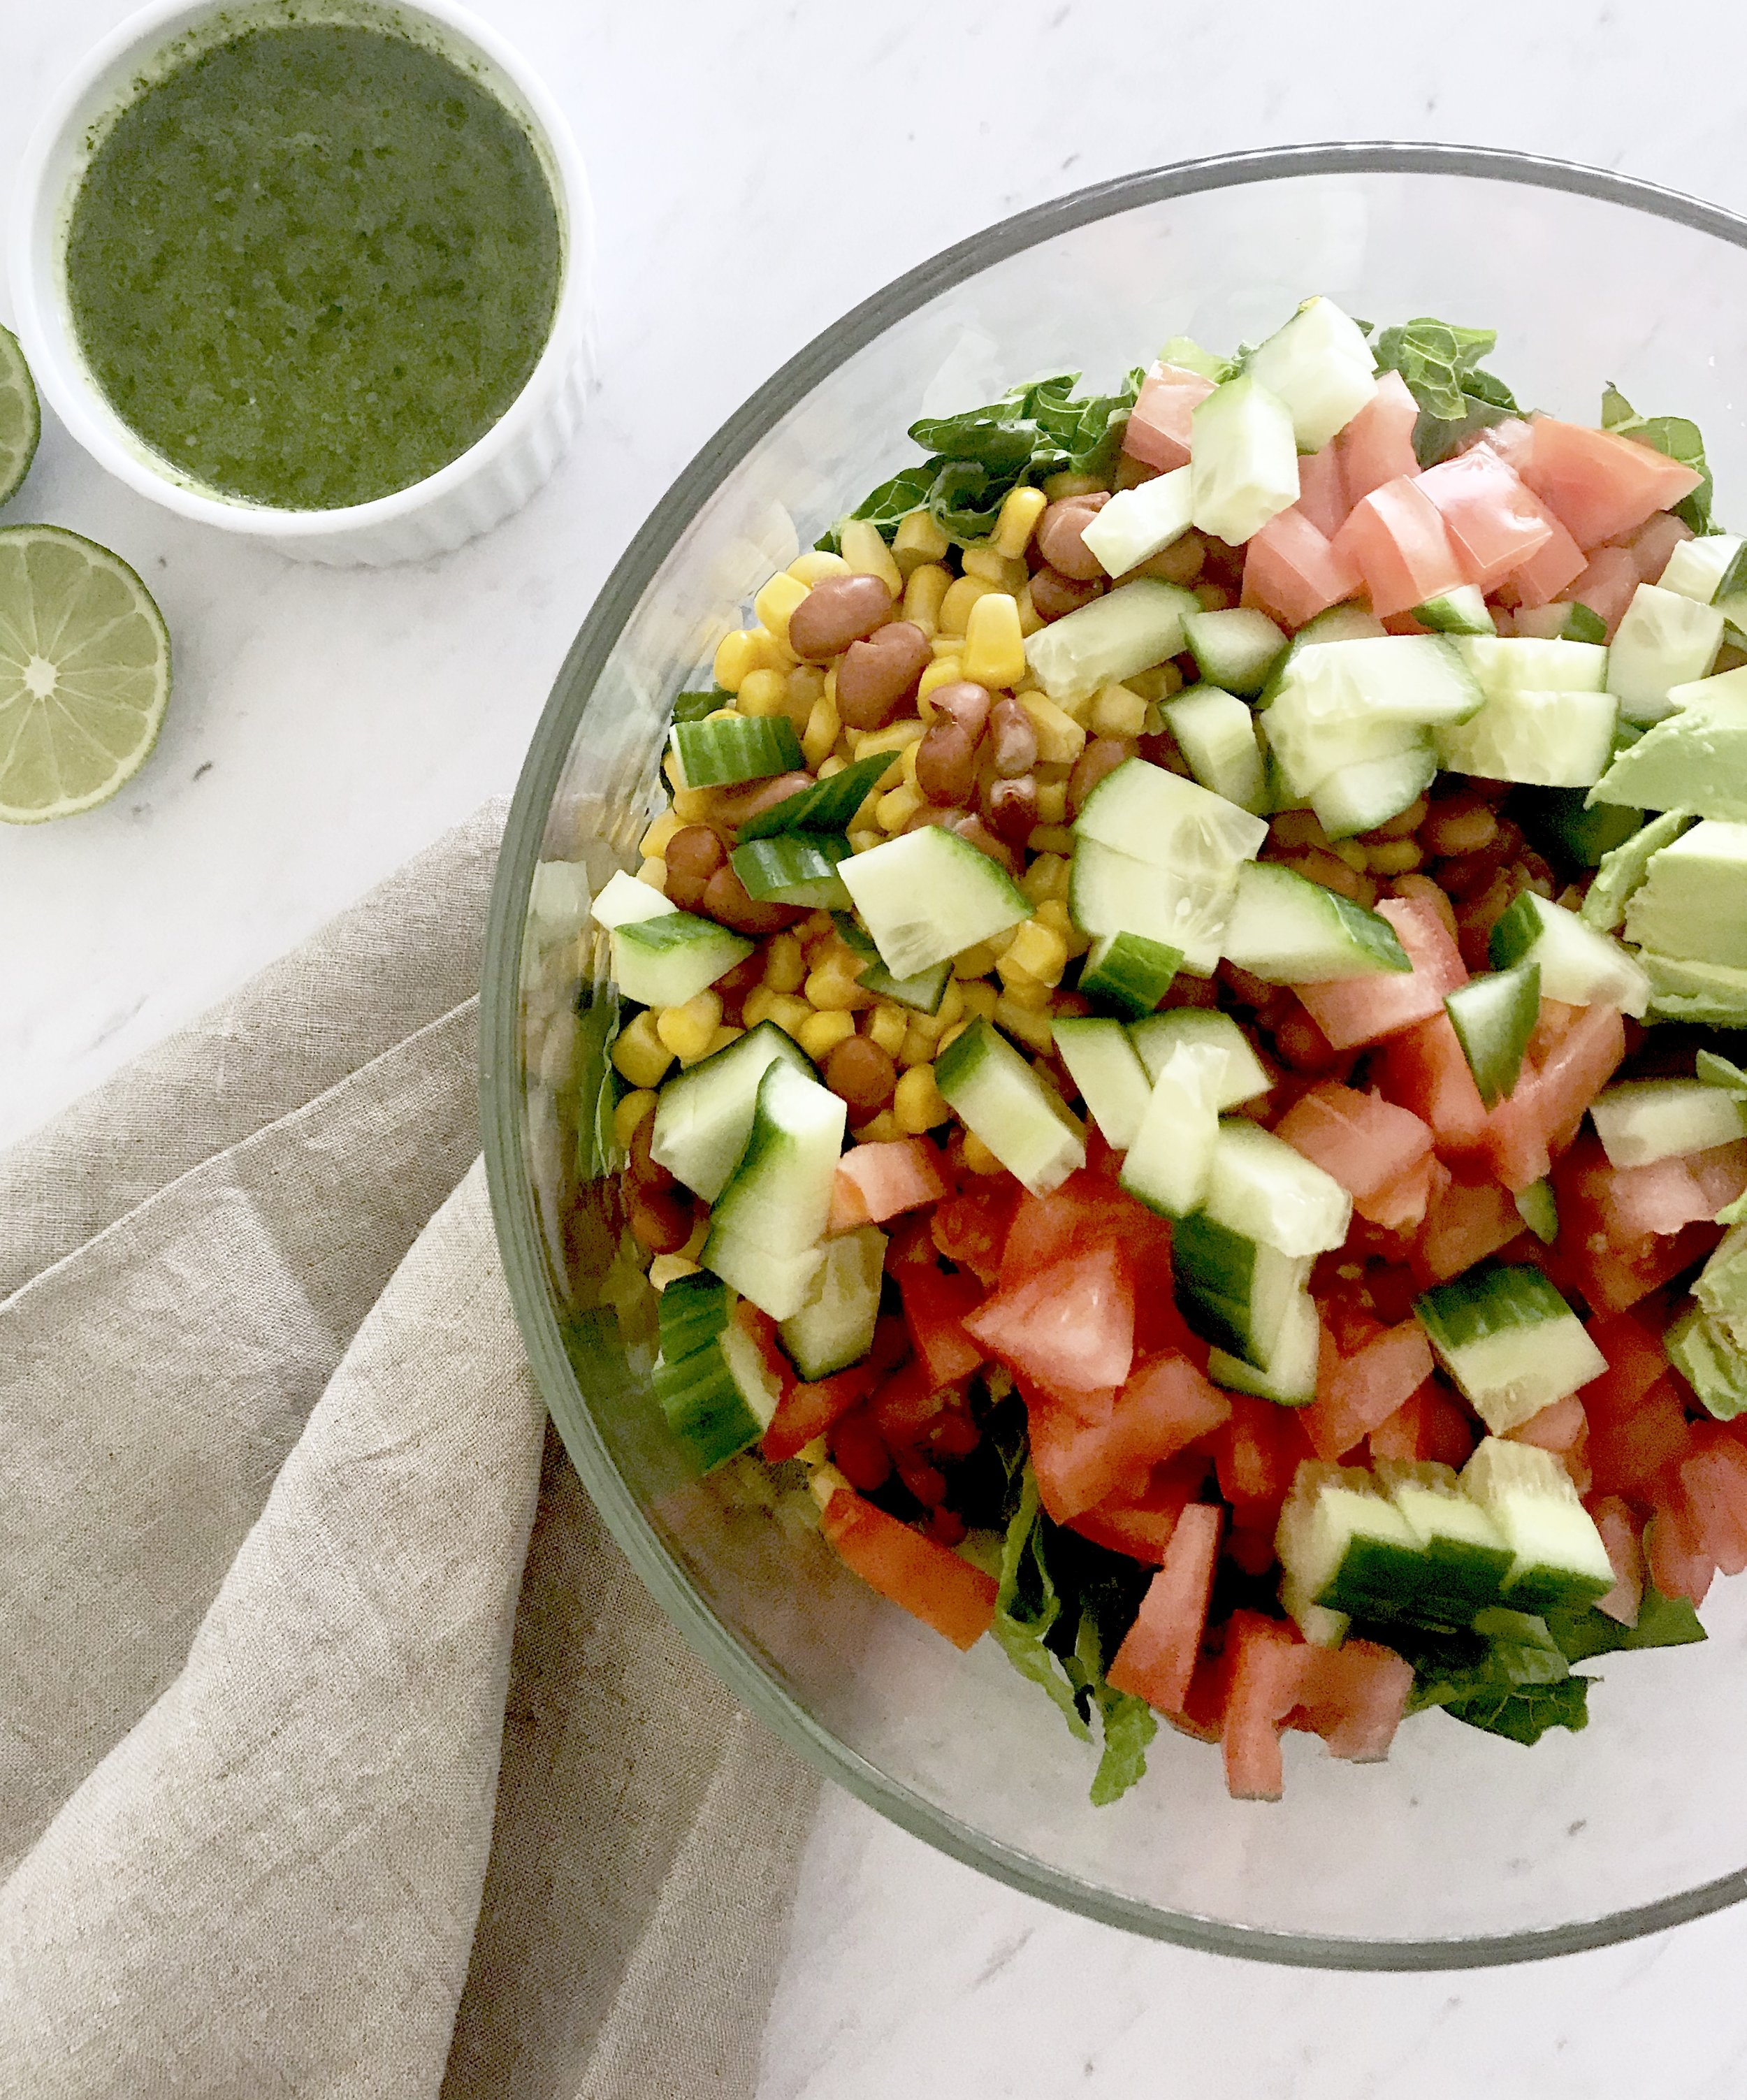 Taco Salad with Cilantro Lime Dressing